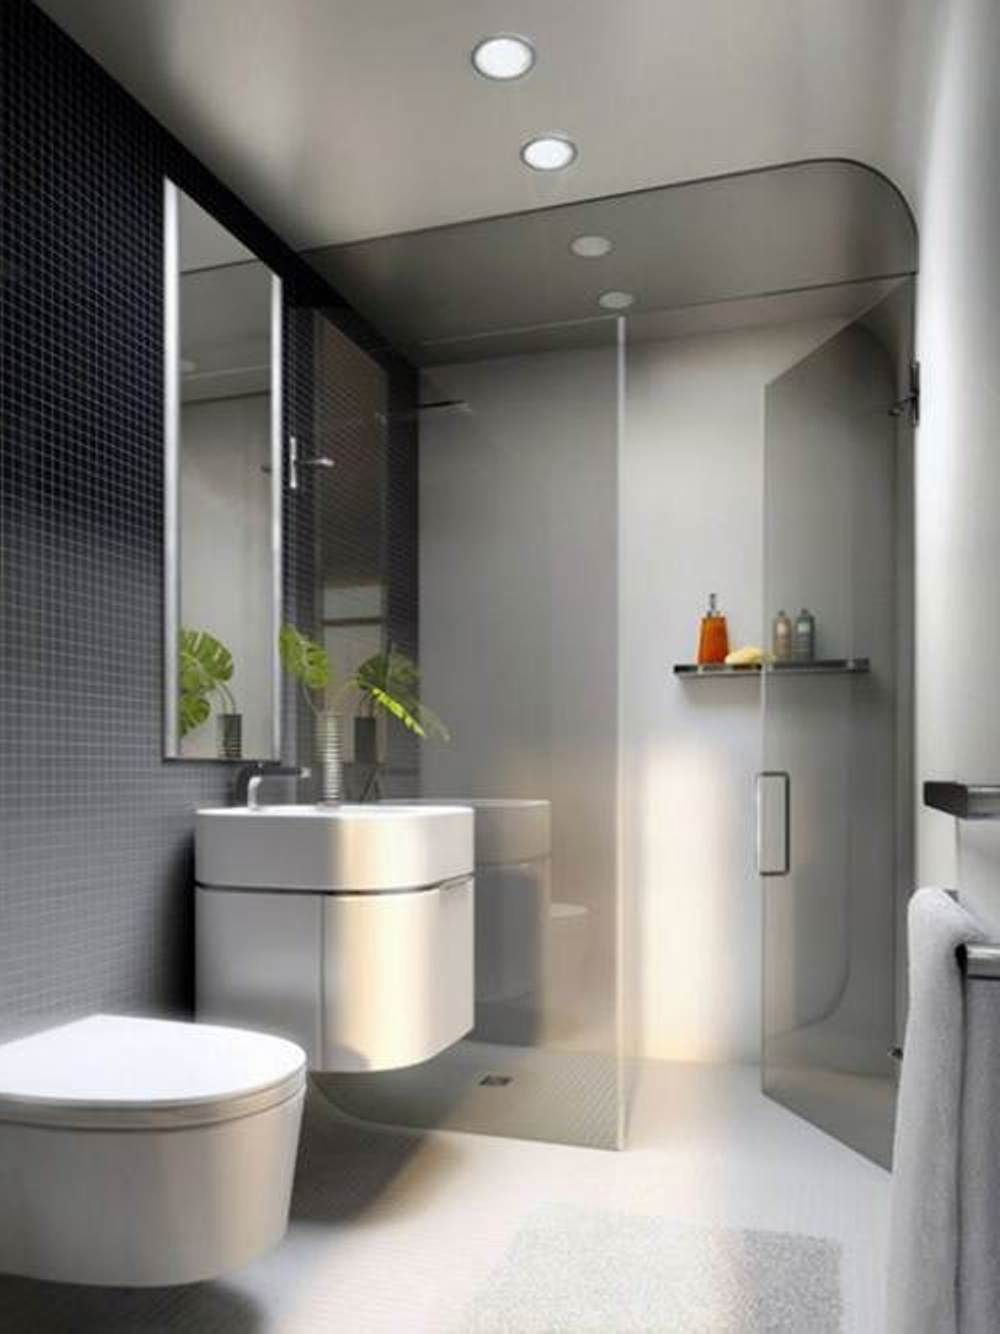 Awesome small modern bathroom designs shower indoor for Minimalist small bathroom design